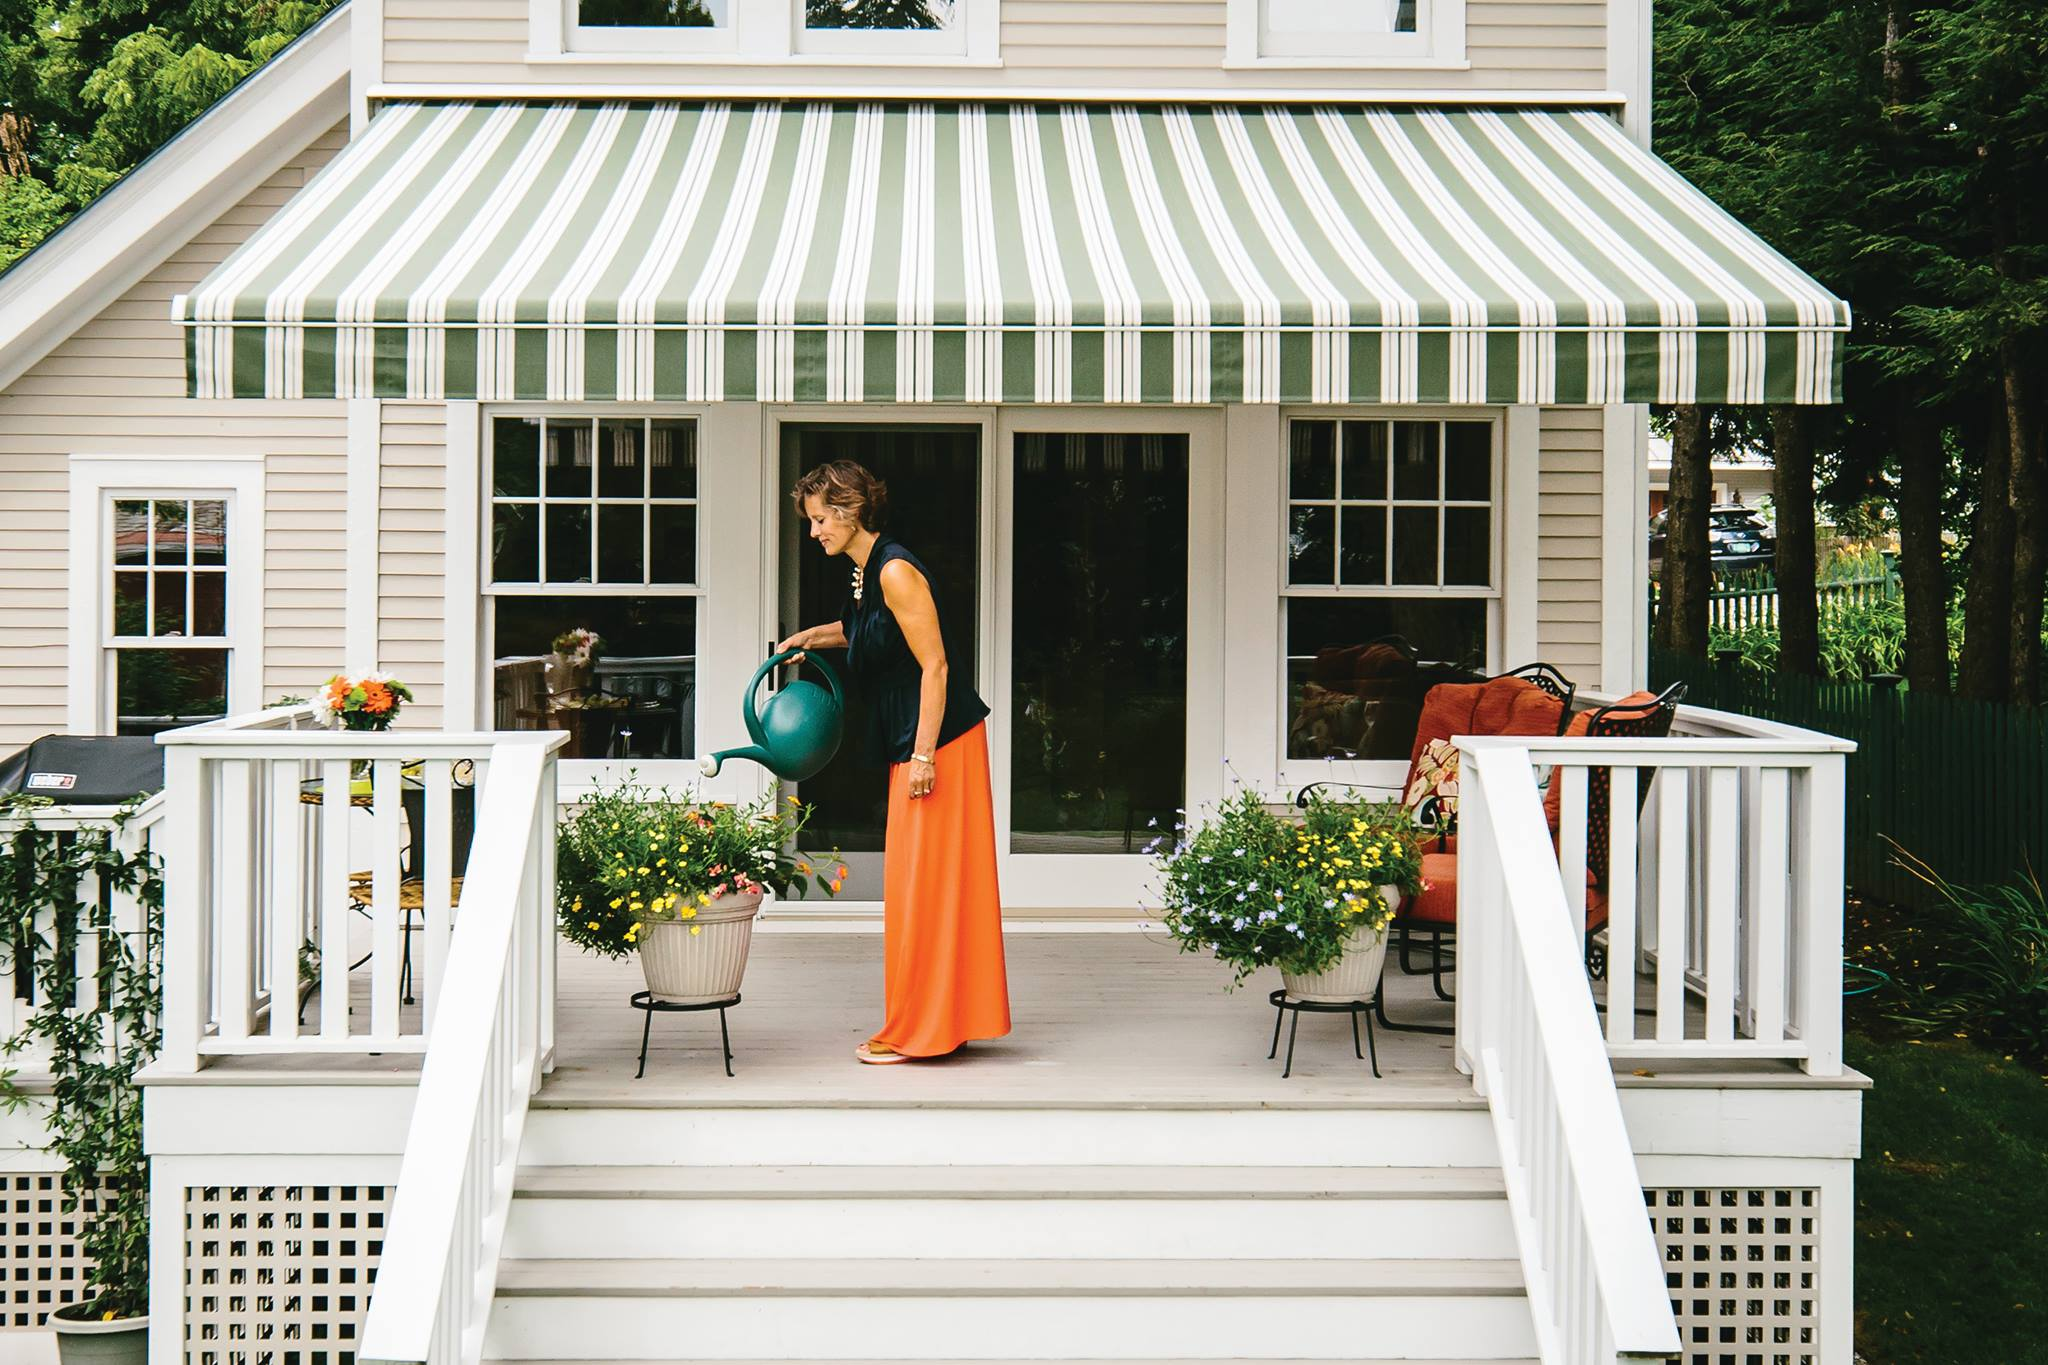 Awnings Rhode Island Why Buy A Retractable Awning